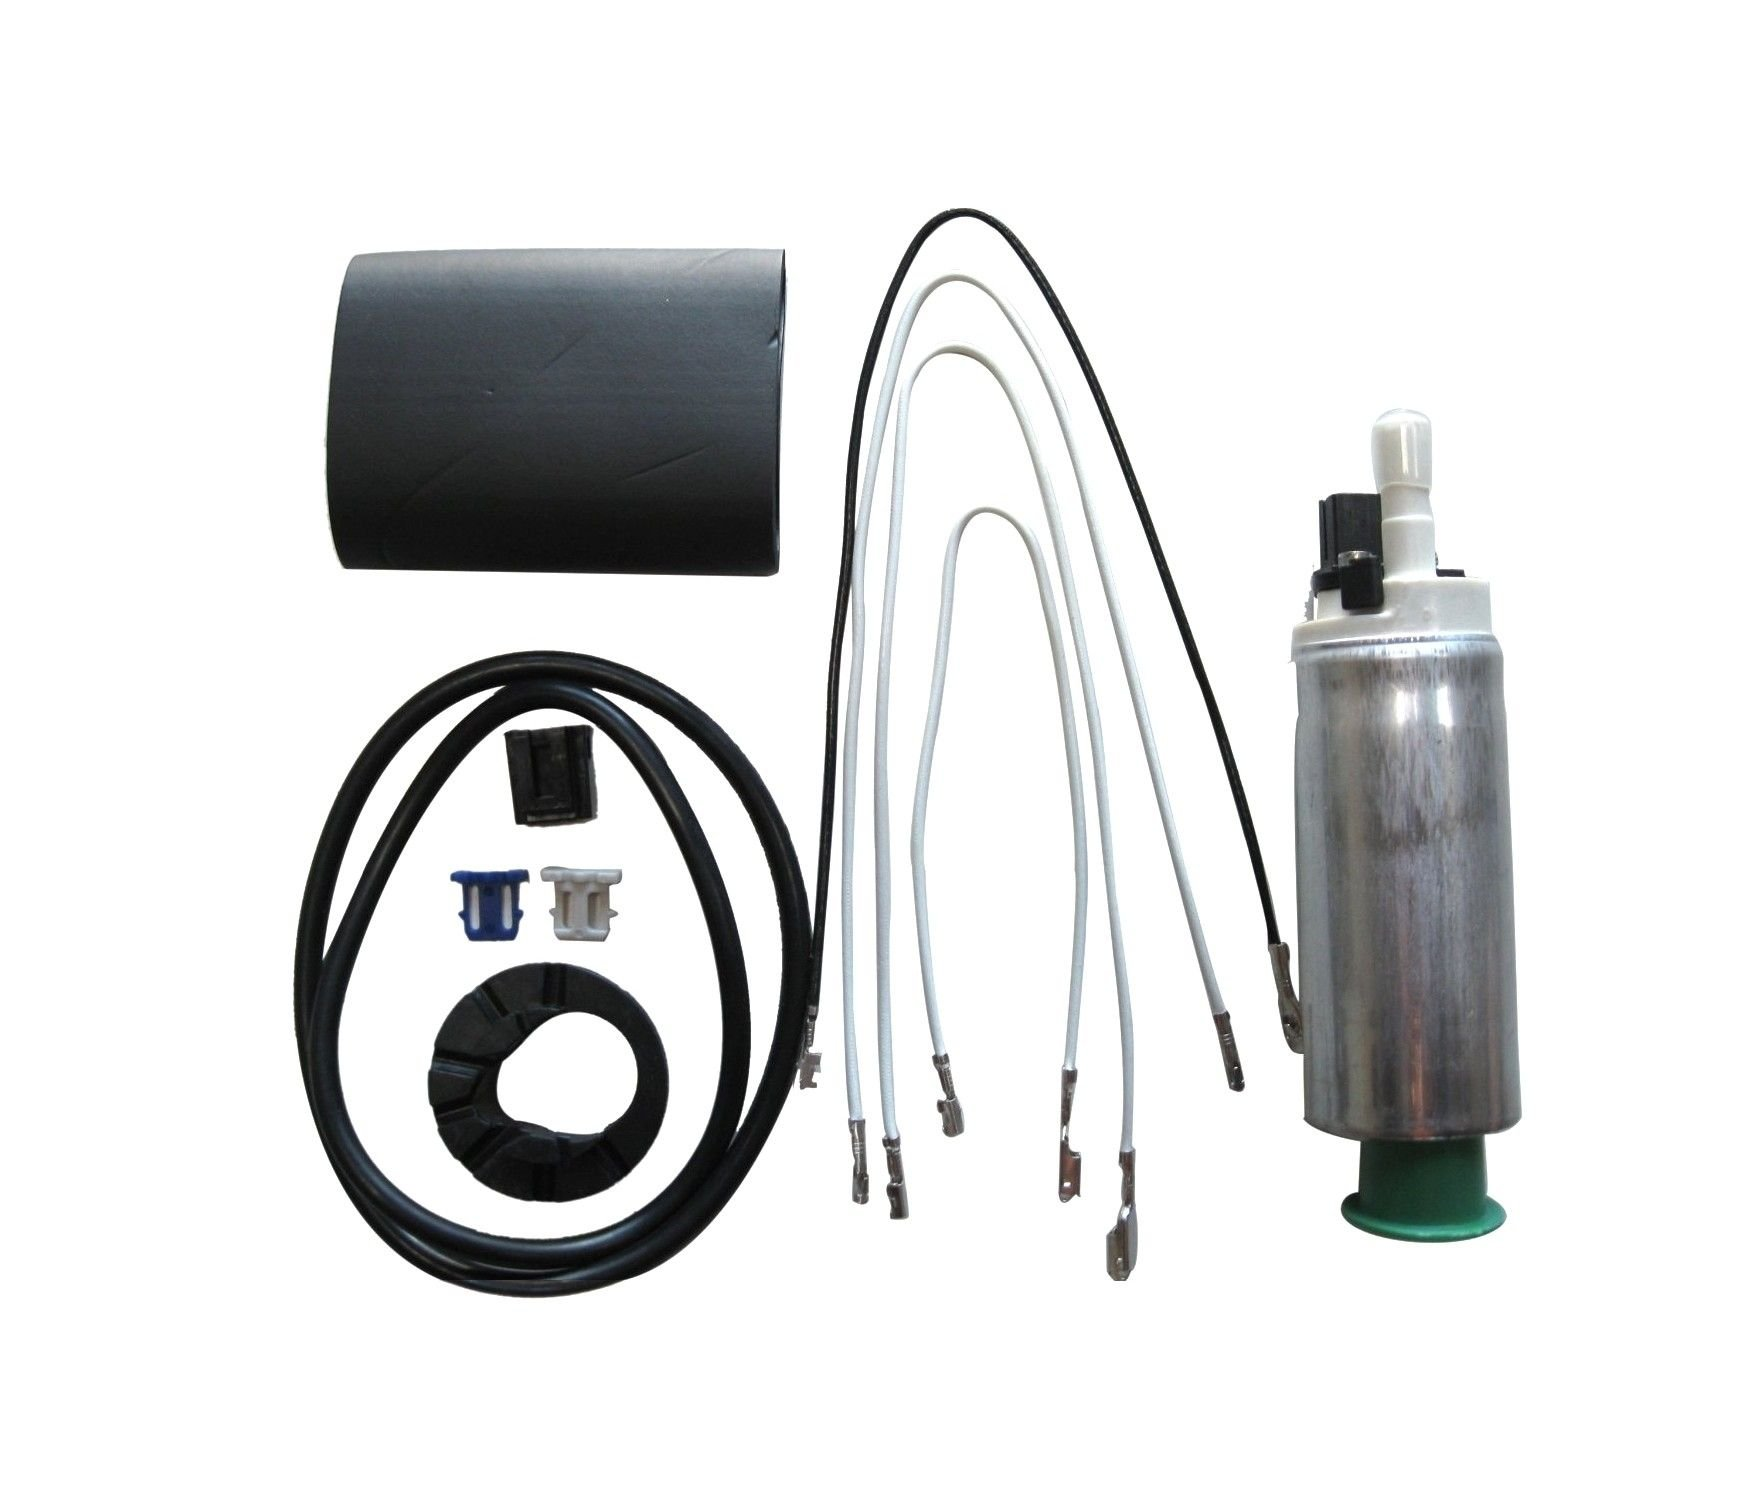 Chevrolet Camaro Electric Fuel Pump Replacement Acdelco Airtex 1980 Z28 Wiring Harness 1987 8 Cyl 57l Autobest F2221 Recommend To Replace Fw900 Strainer Required Validate The Warranty